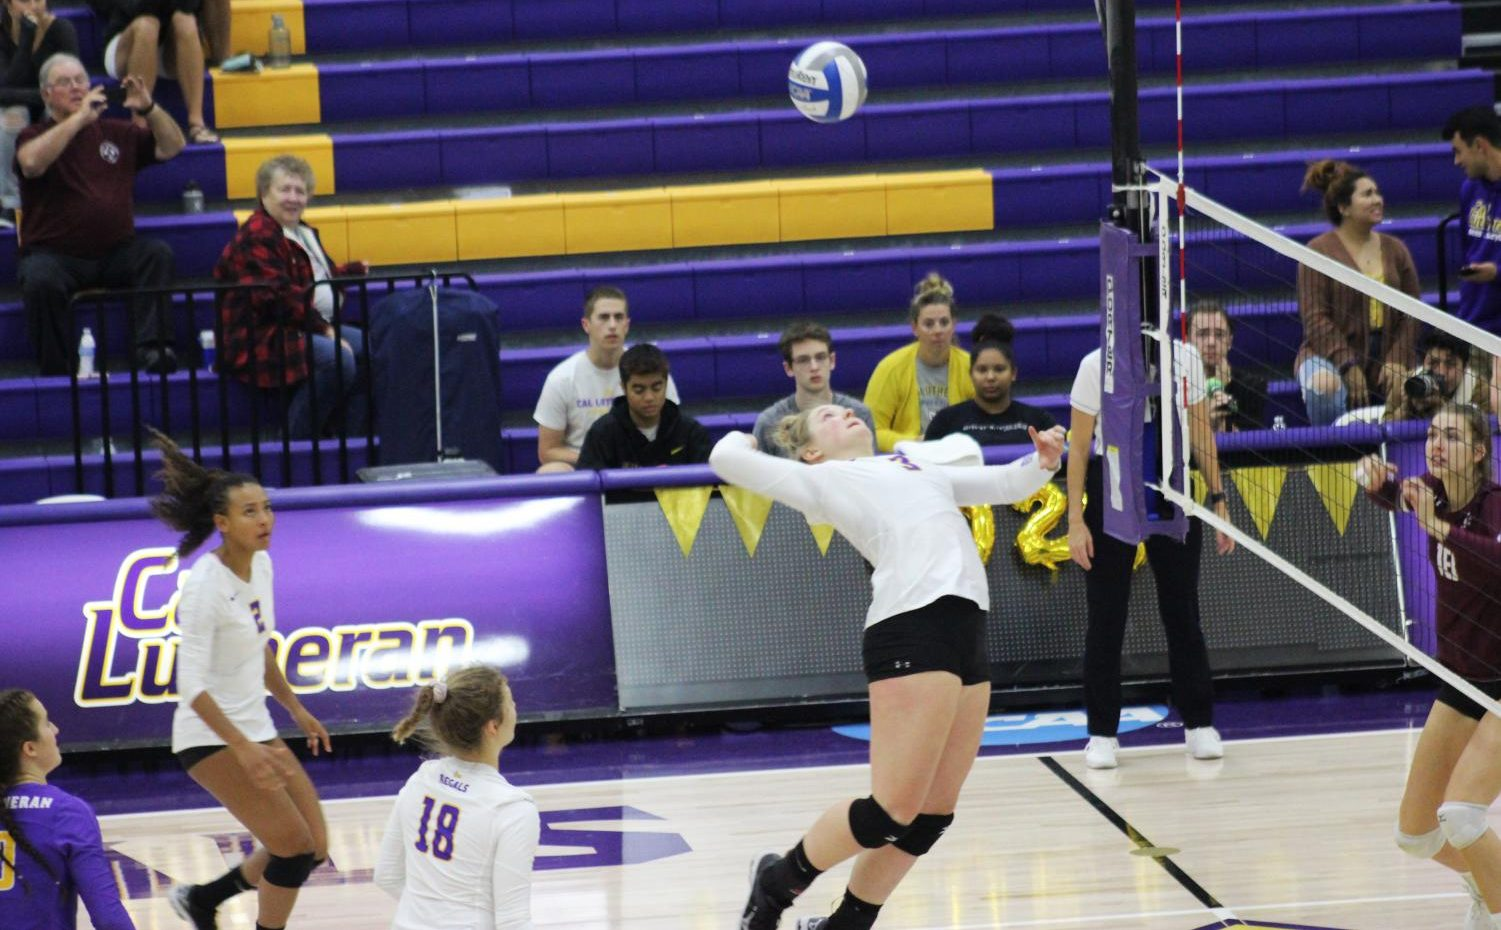 Sophomore middle blocker Maci Haddad jumps to hit a spike on Saturday, Nov. 2 while playing the Redlands Bulldogs.